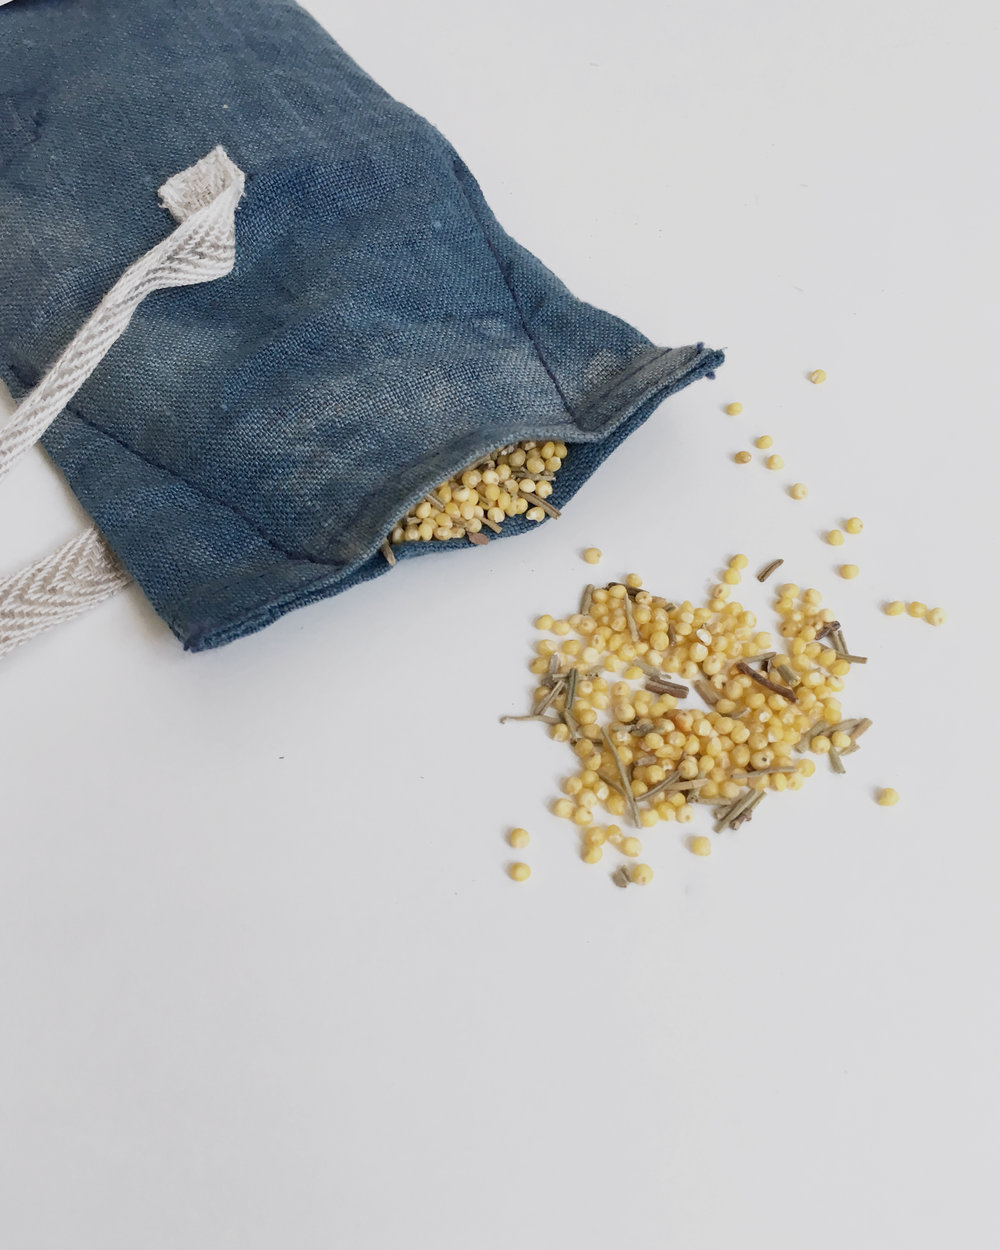 healing eye pillow with millet and rosemary